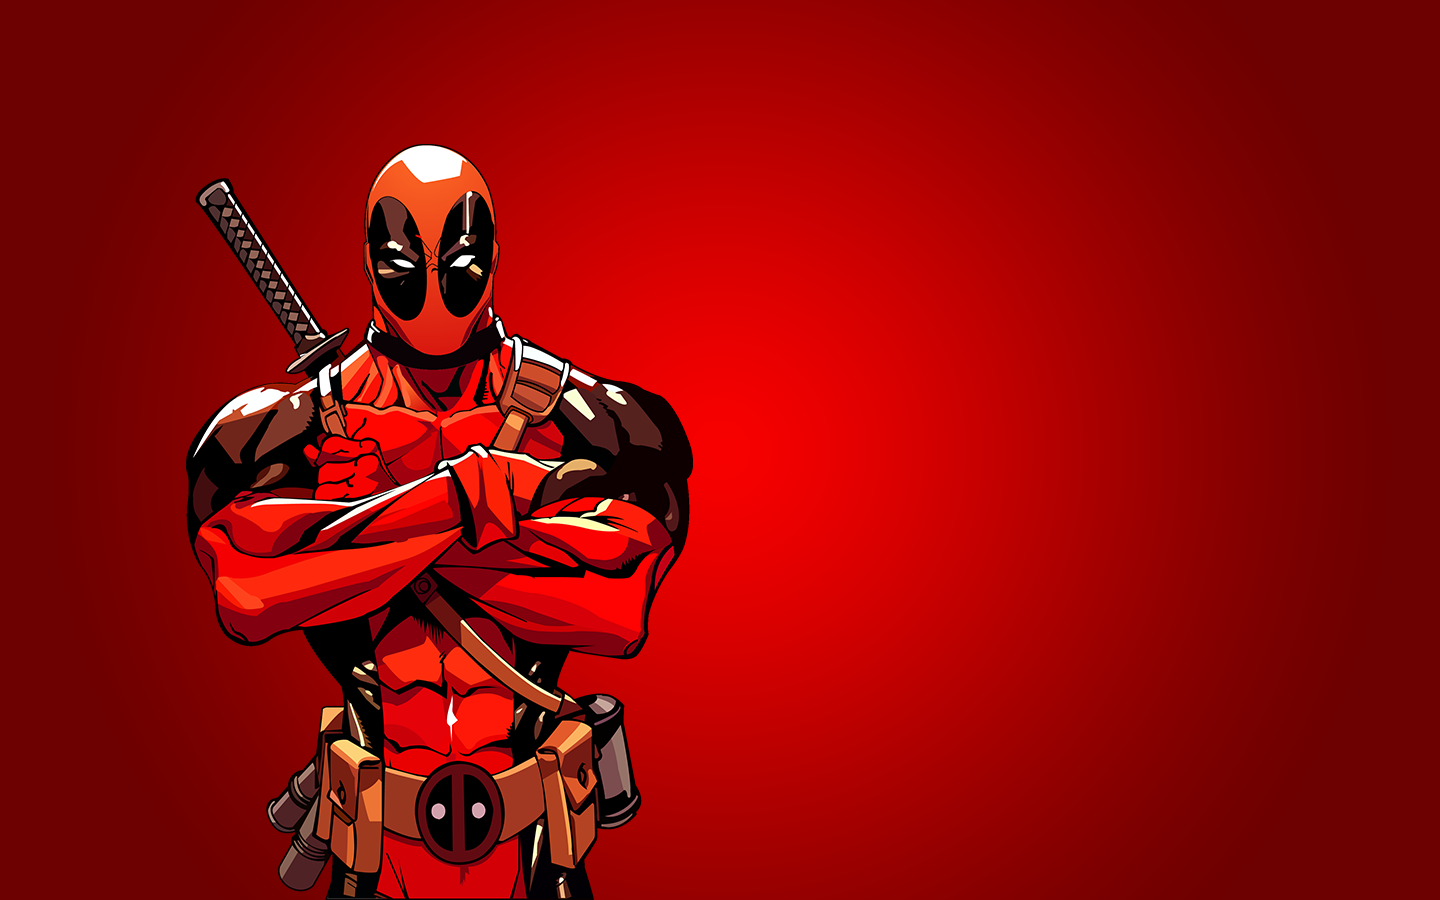 Deadpool wallpaper by bogun99 on deviantart for Deviantart wallpaper